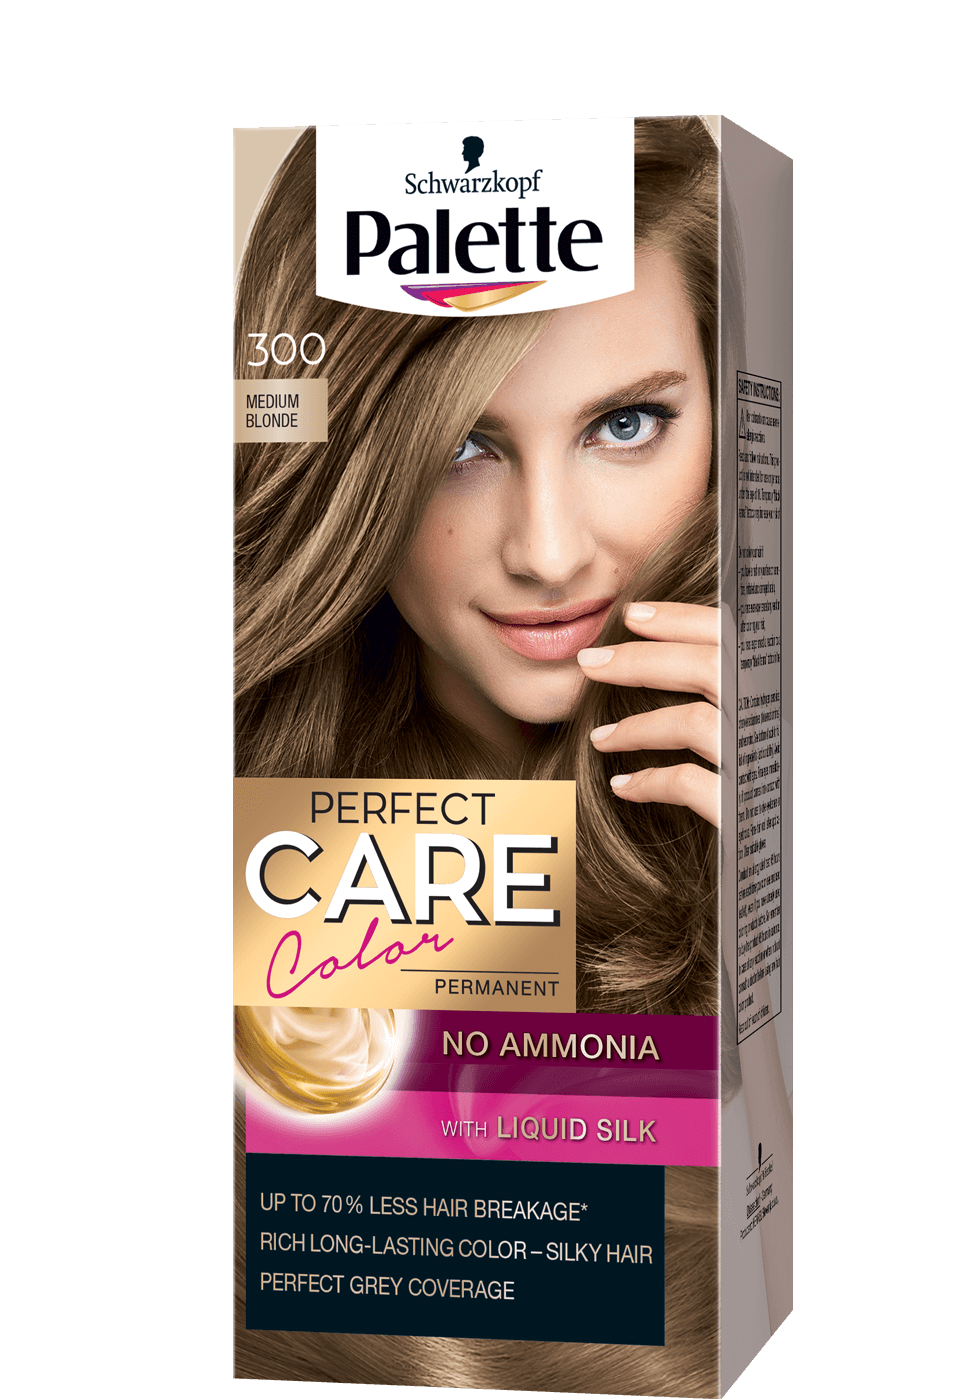 palette_com_perfect_care_baseline_300_medium_blonde_970x1400